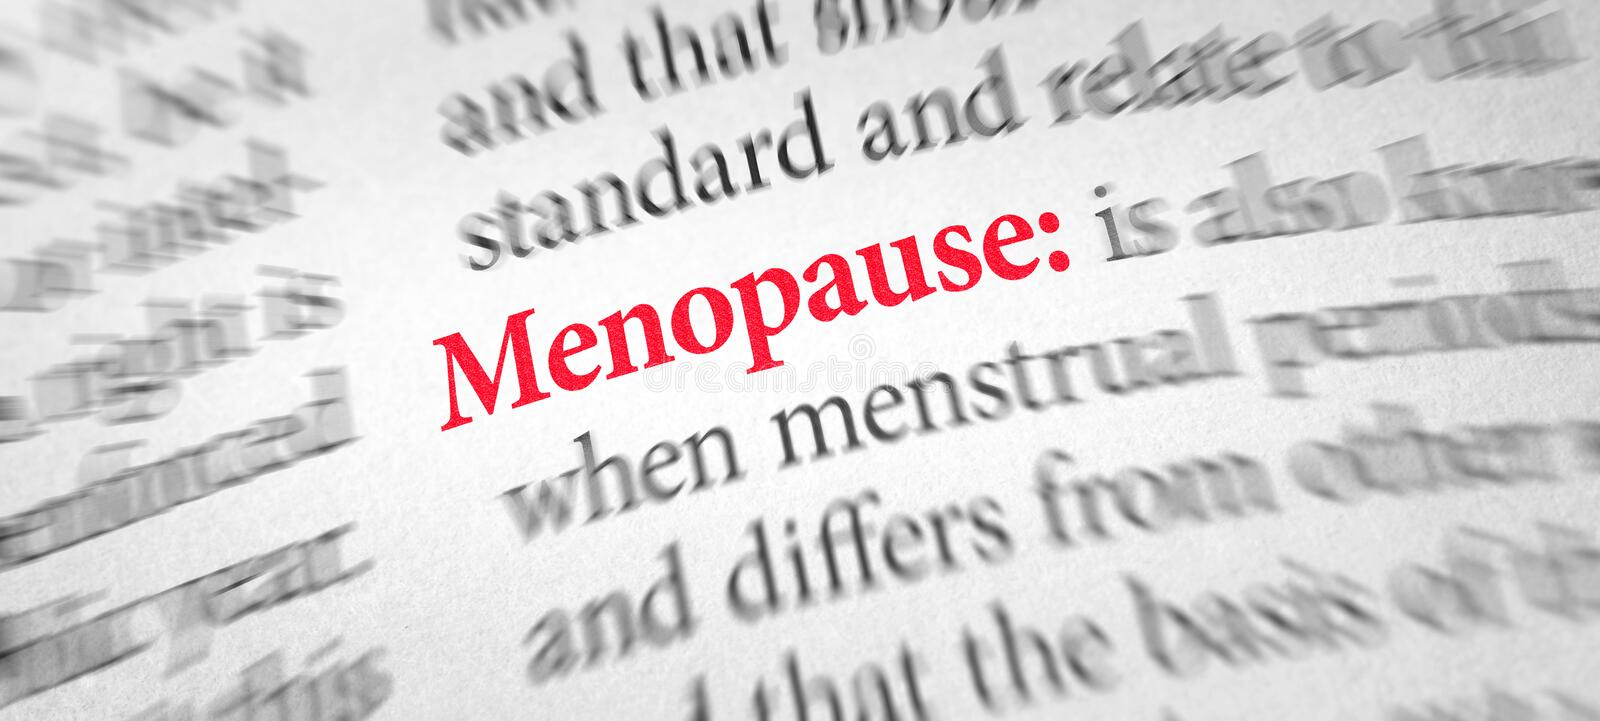 Definition of the word Menopause in a dictionary stock photos